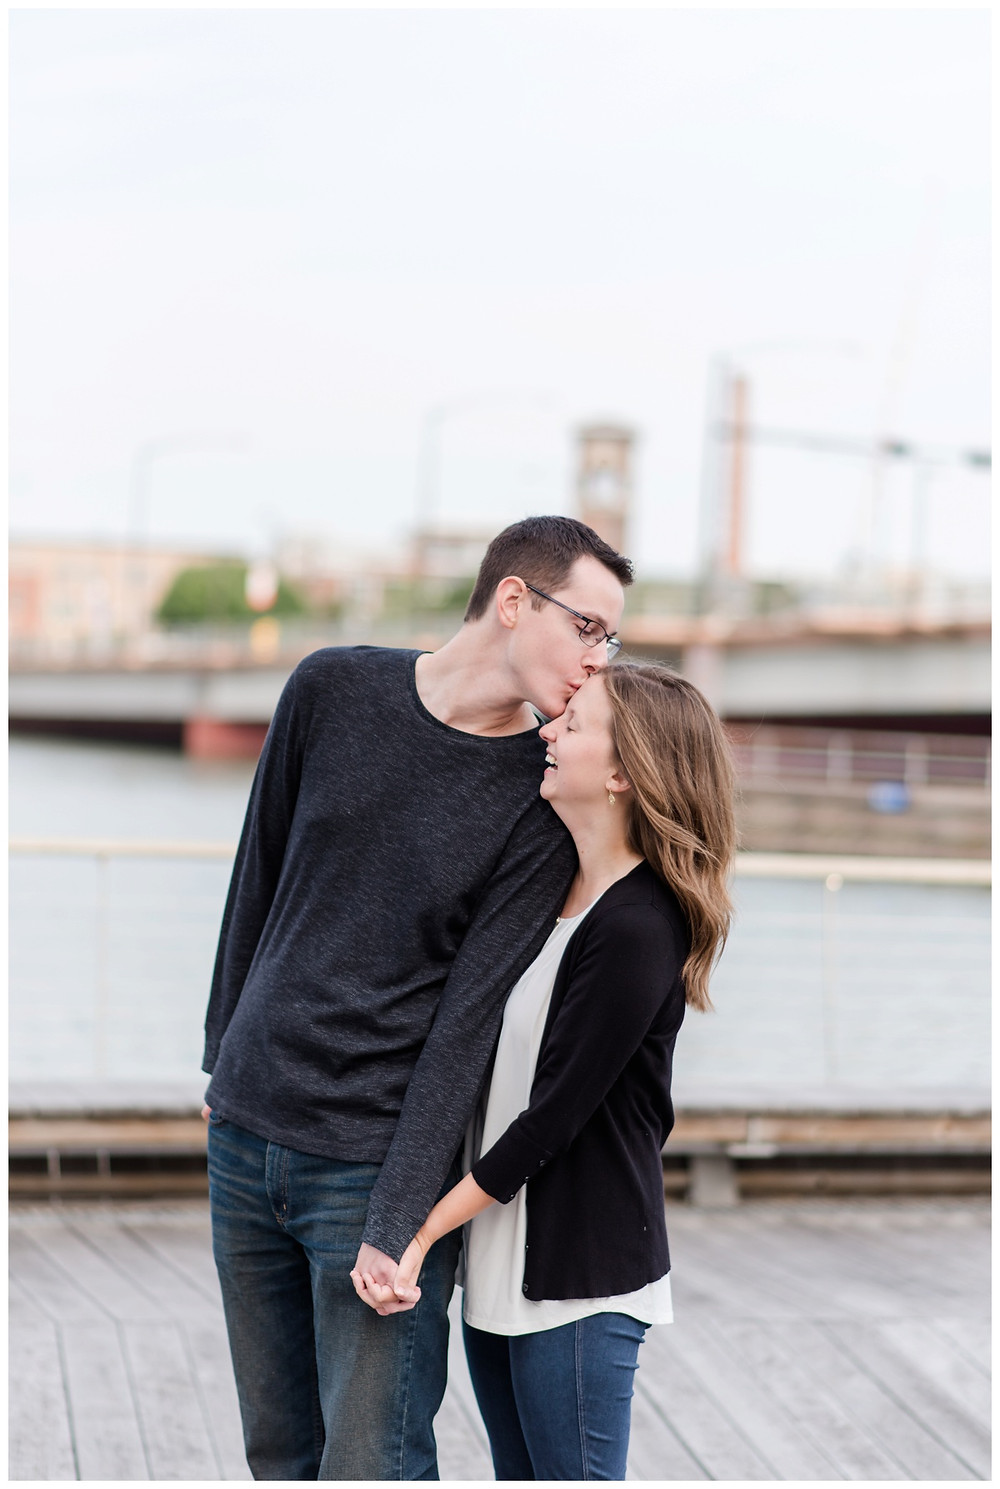 kissing-forehead-at-downtown-green-bay-engagement-session-by-appleton-wedding-photographer-kyra-rane-photography